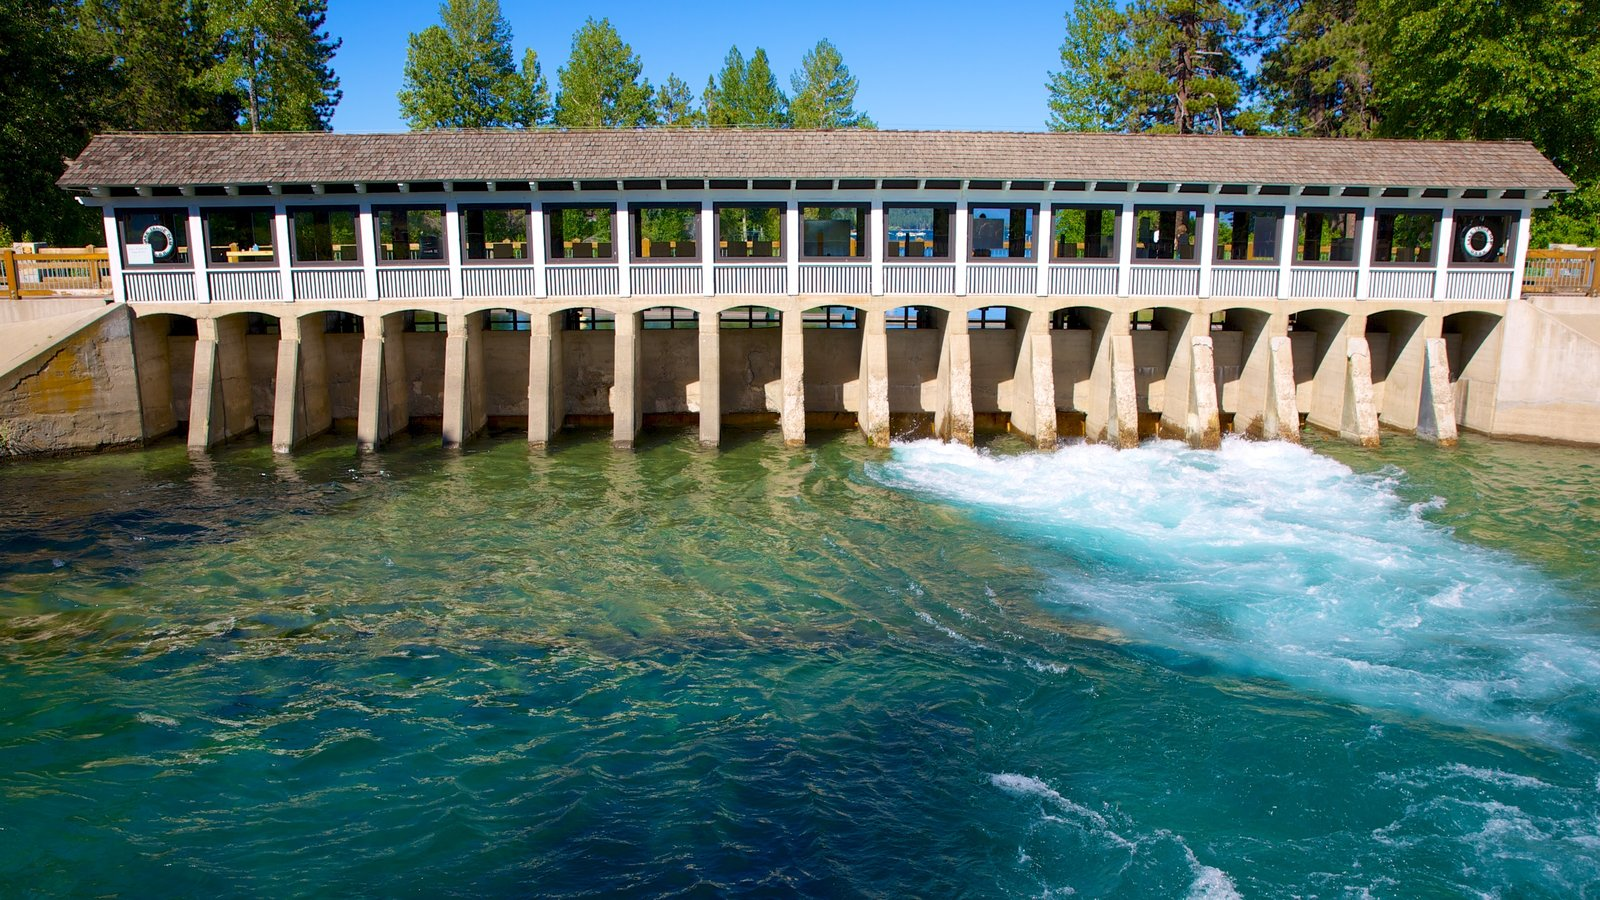 Tahoe City showing a bridge, a lake or waterhole and heritage architecture